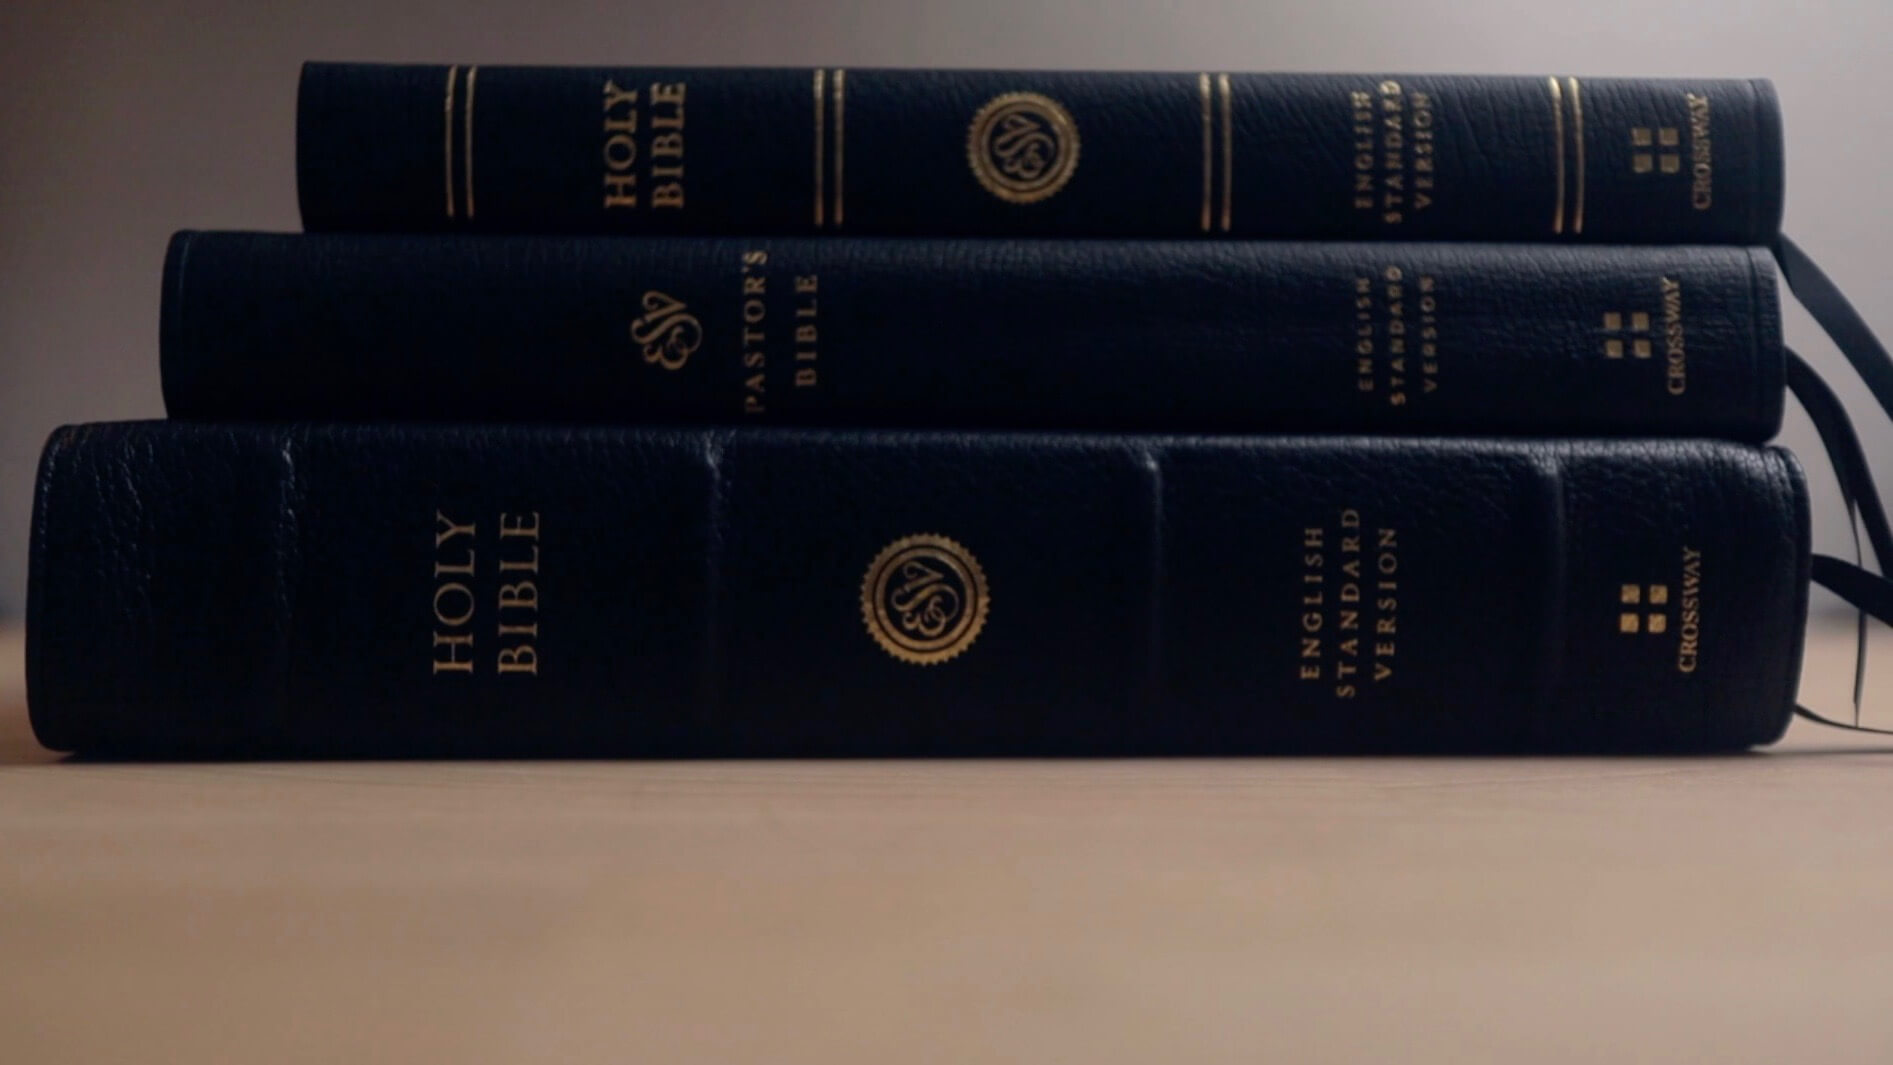 Best Bible: ESV Thinline vs Pastor's vs Preaching Bible